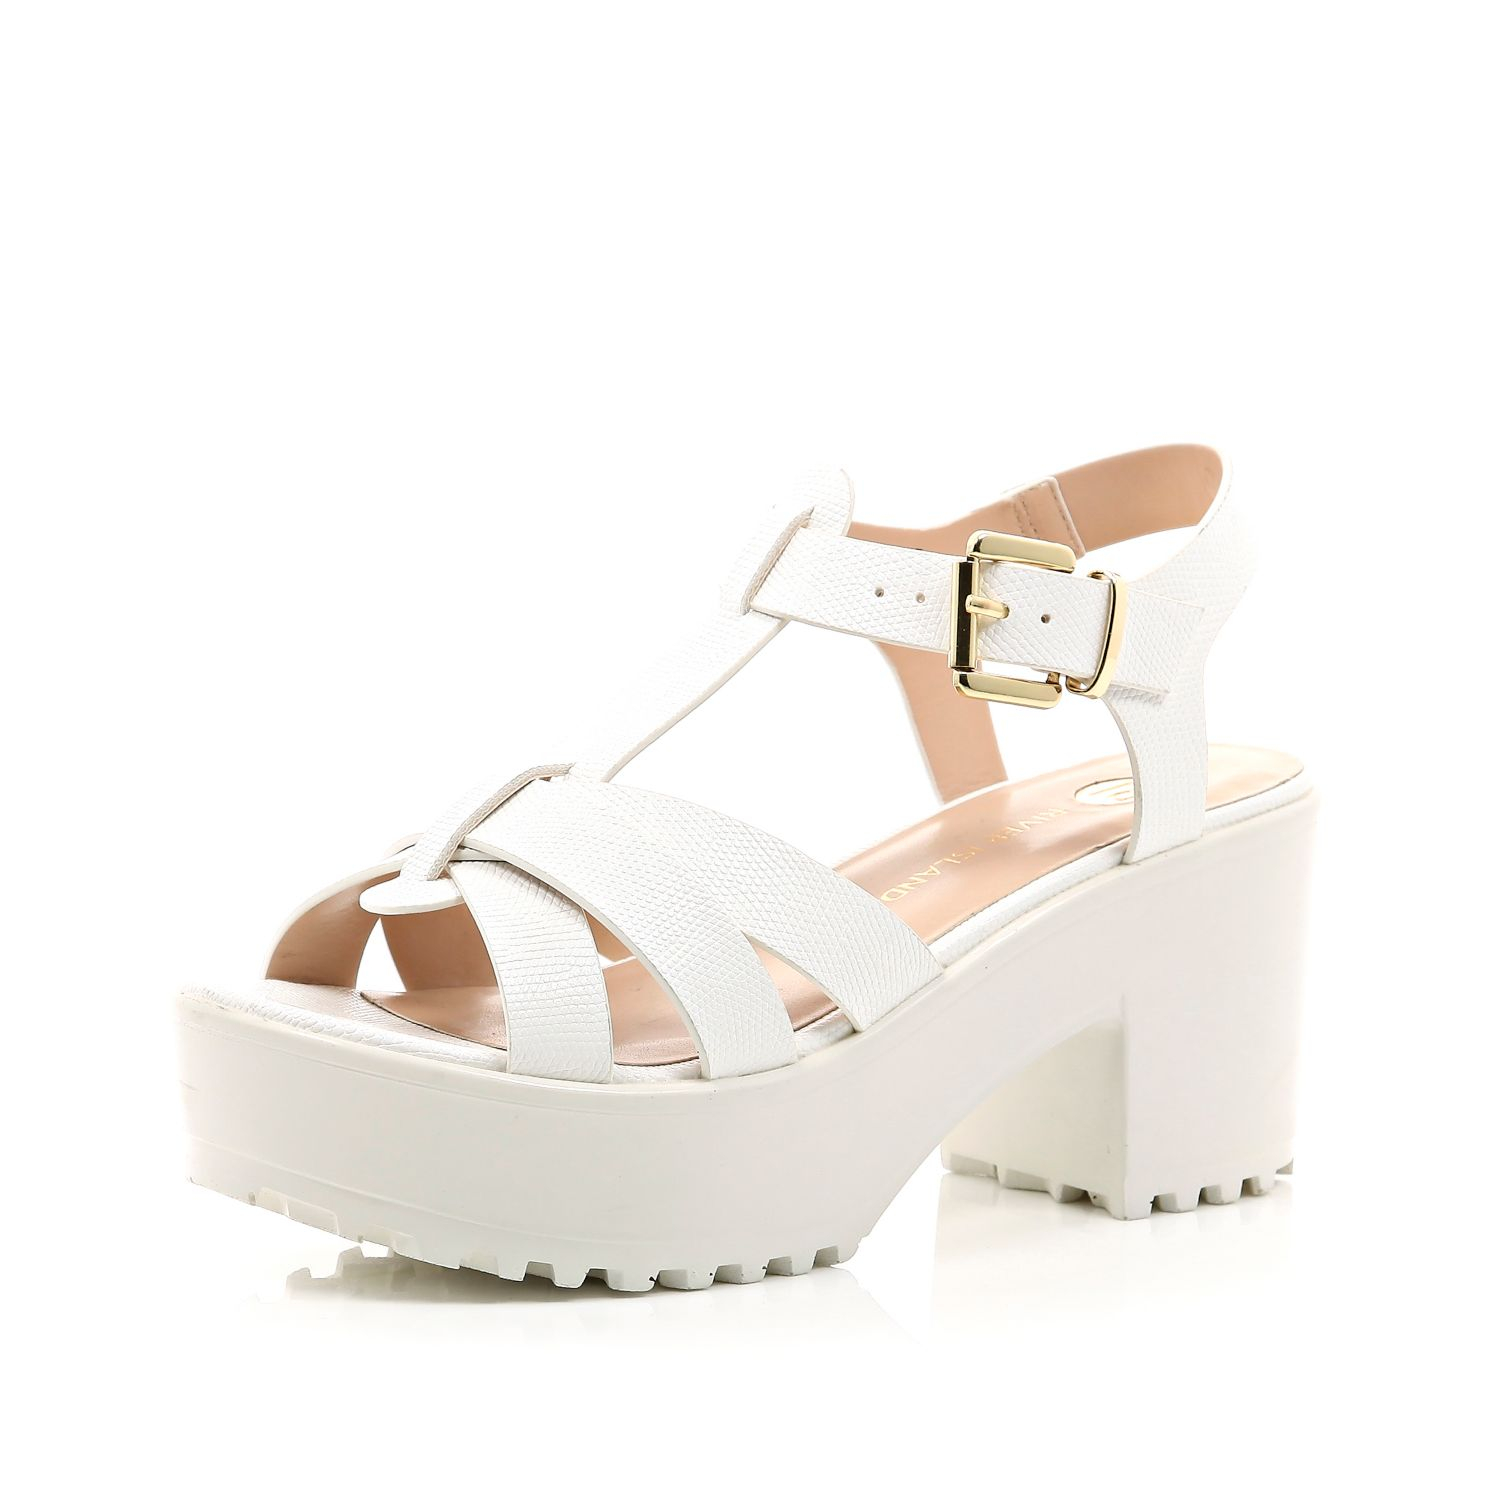 206ef24013a River Island White Snake Print Strappy Chunky Sandals in White - Lyst